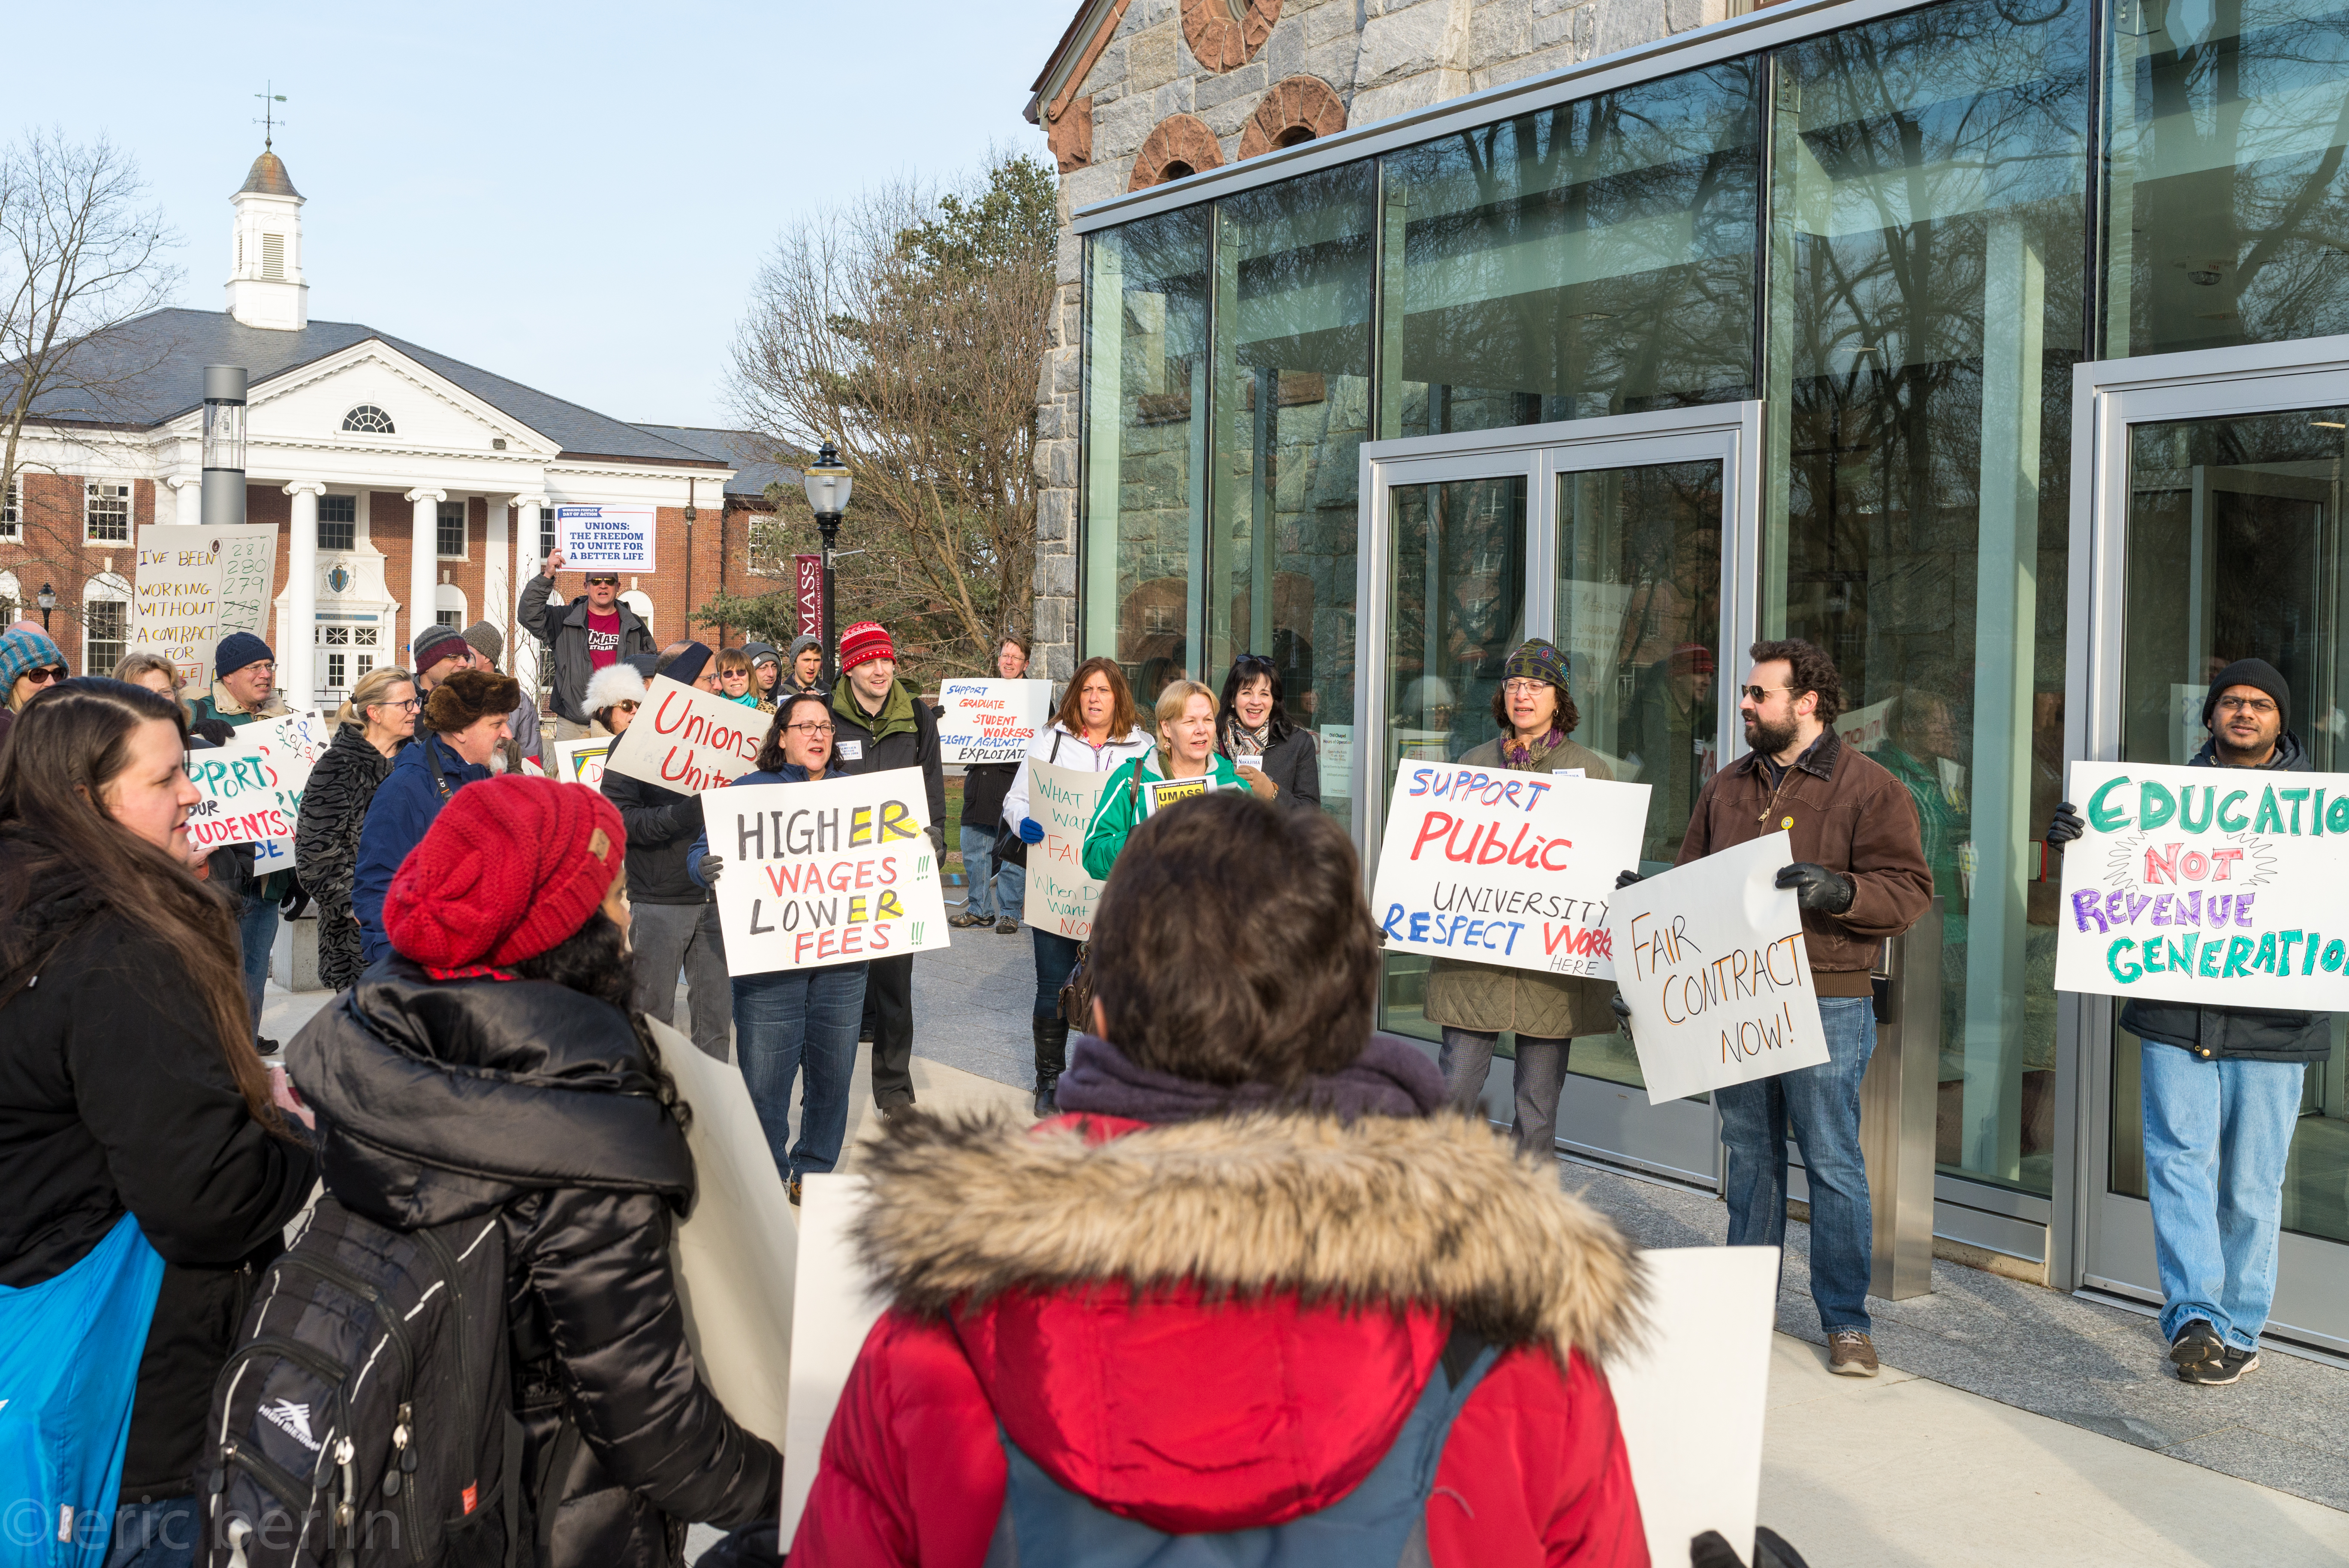 bdc809bde31 UMass unions take contract demands to trustees - Utter Buzz!